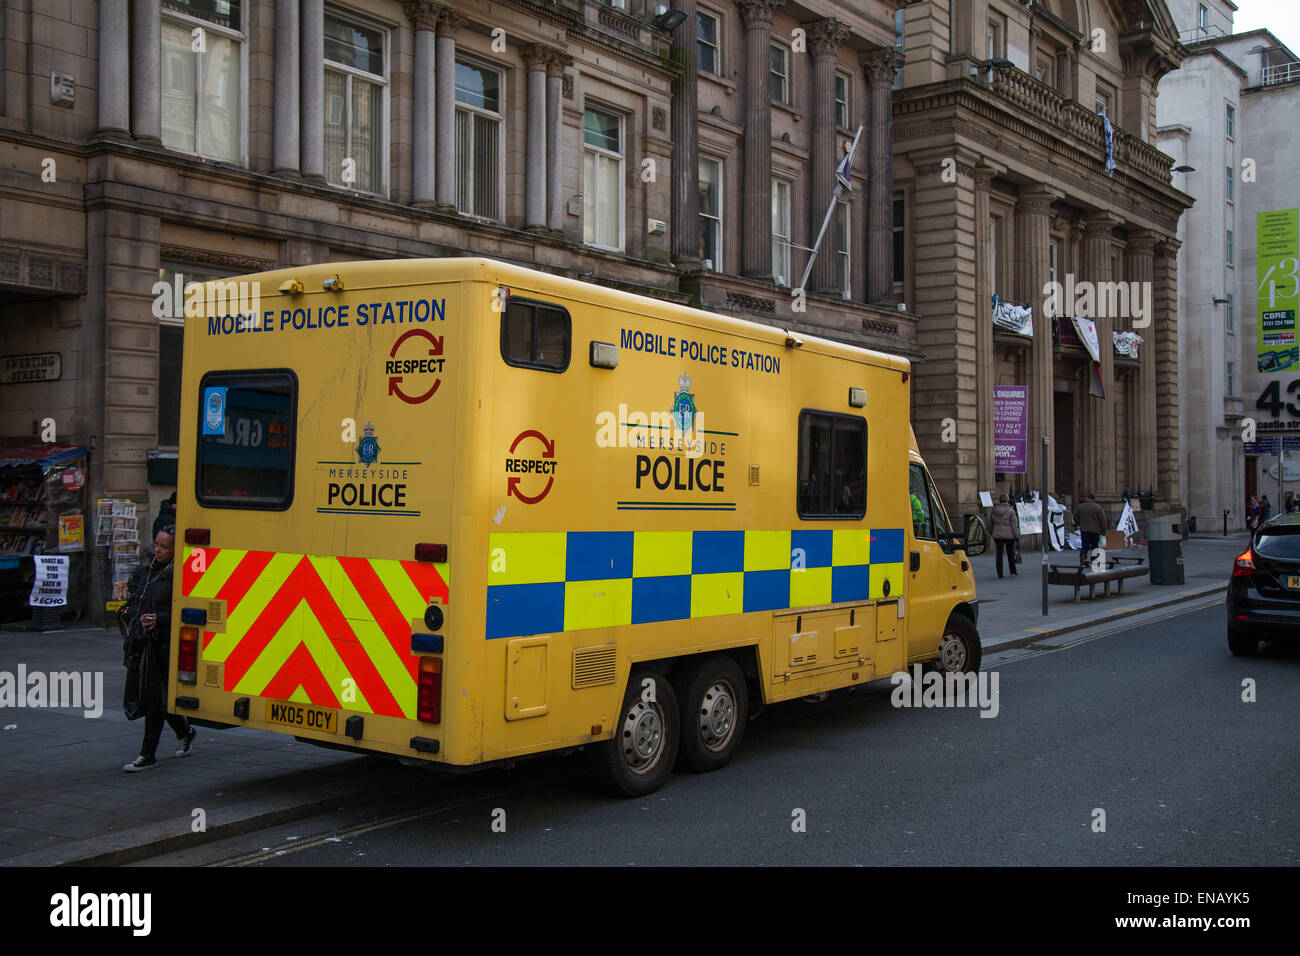 Liverpool, Merseyside, 1st May, 2015. Mobile Police Station Vehicle; Homeless Demonstrators occupying old Bank of - Stock Image